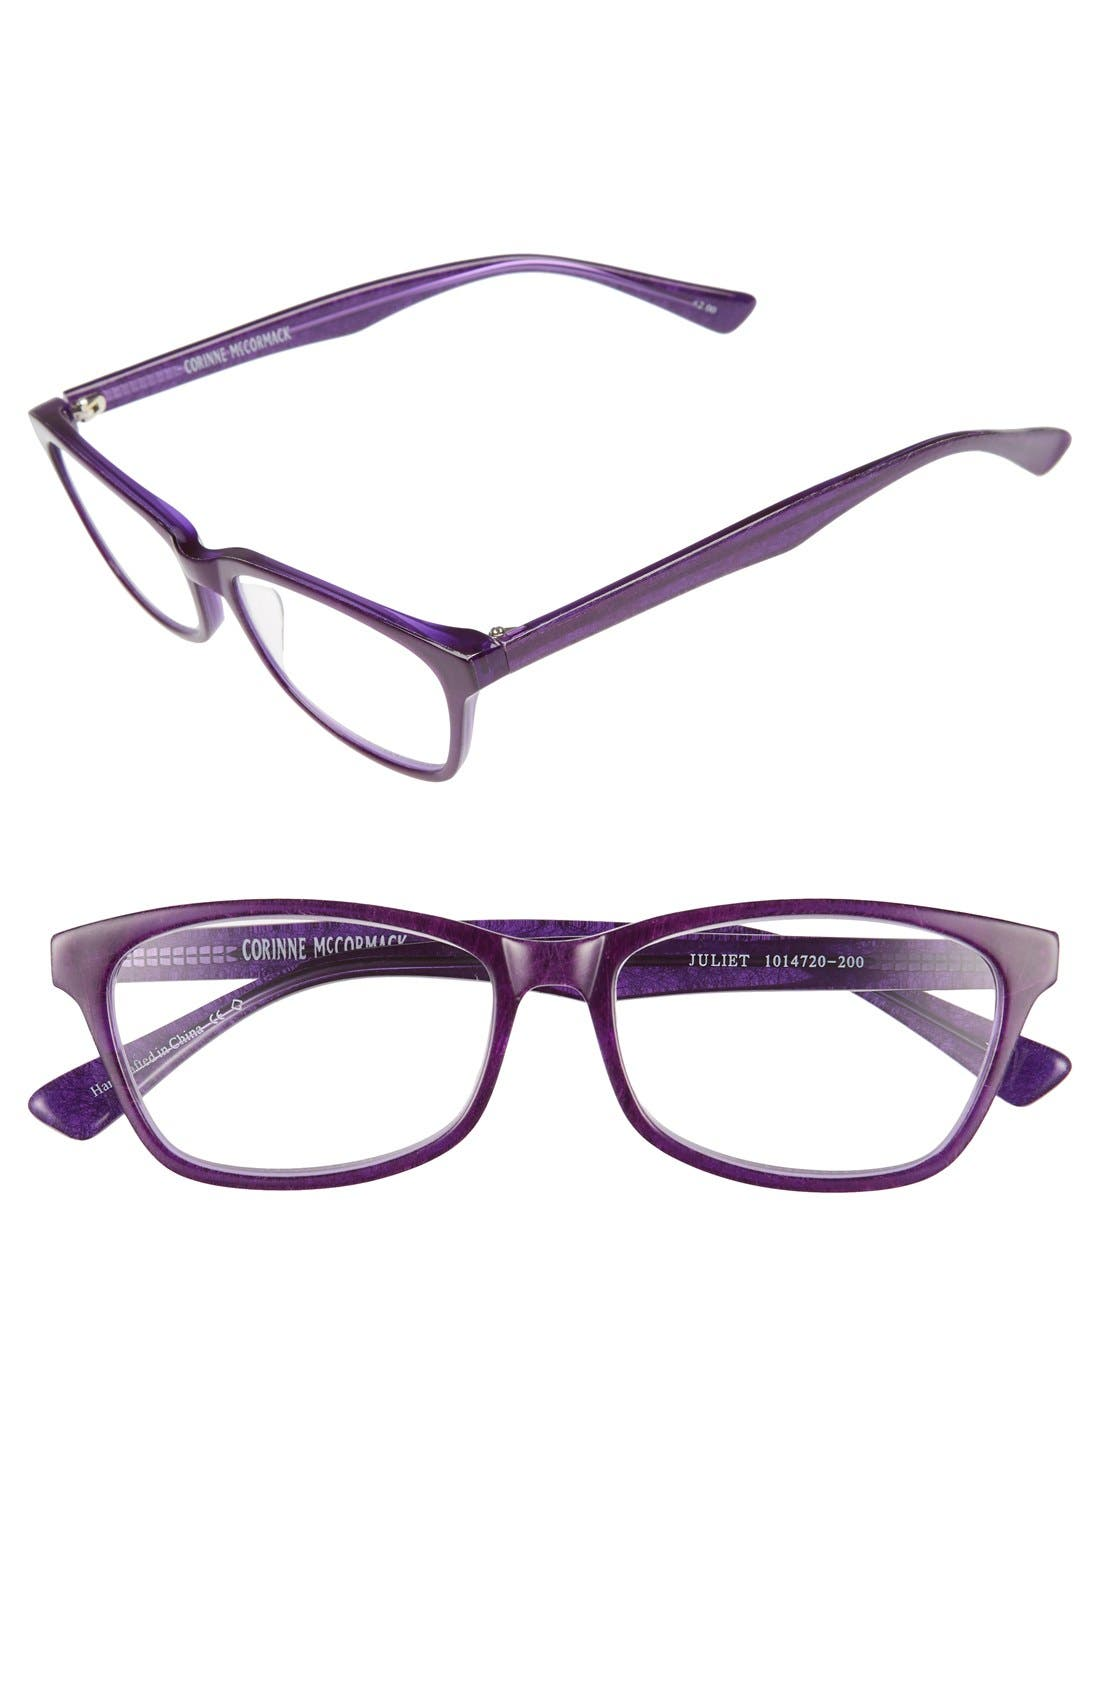 Main Image - Corinne McCormack 'Juliet' 53mm Reading Glasses